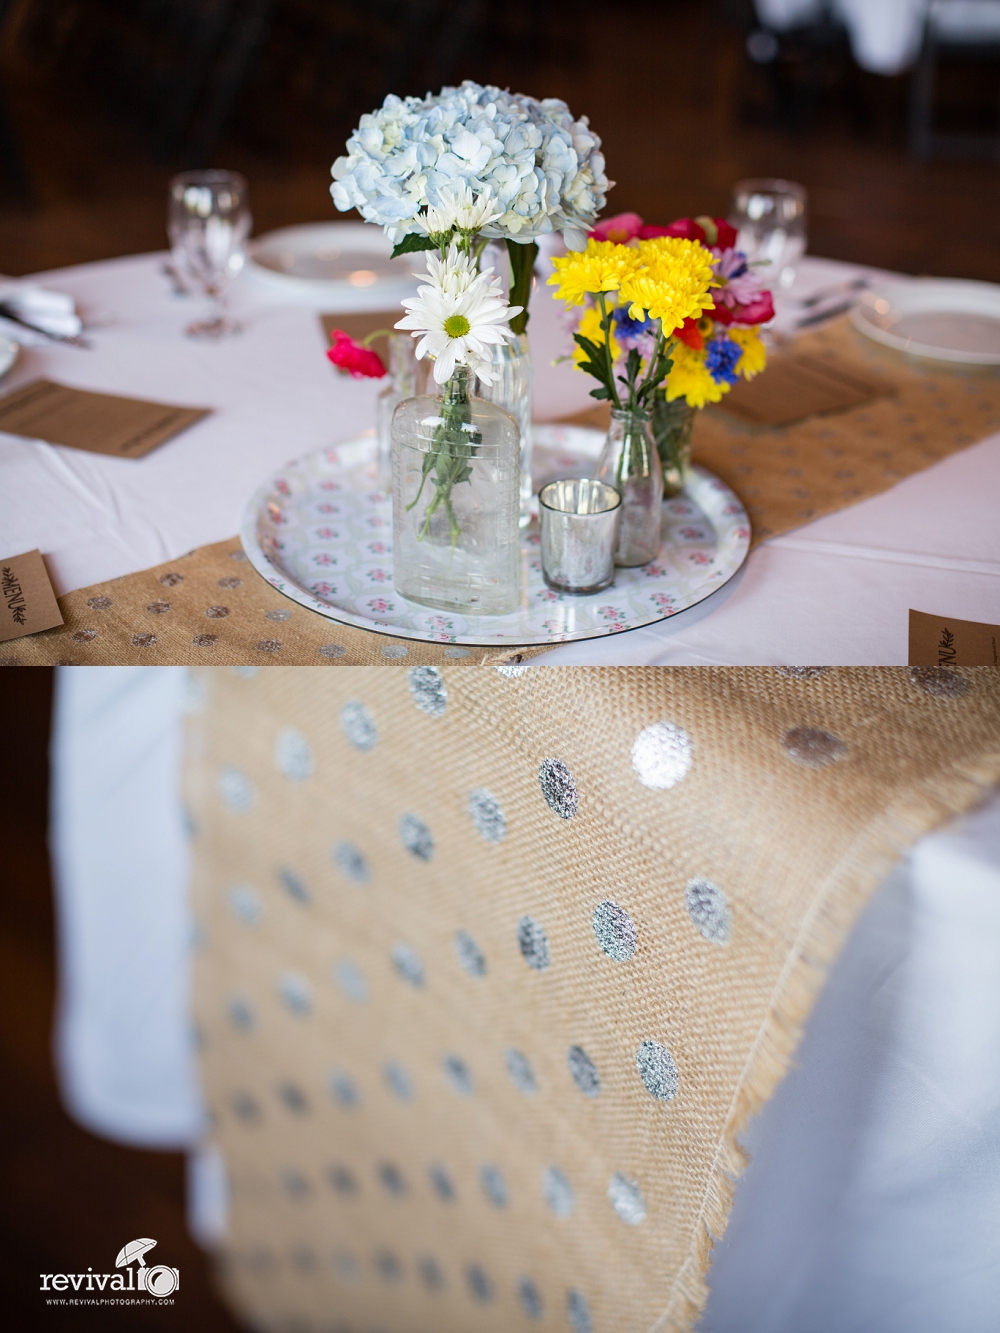 Rustic-Urban Wedding at The Liberty in Downtown Elkin, NC by Revival Photography www.revivalphotography.com